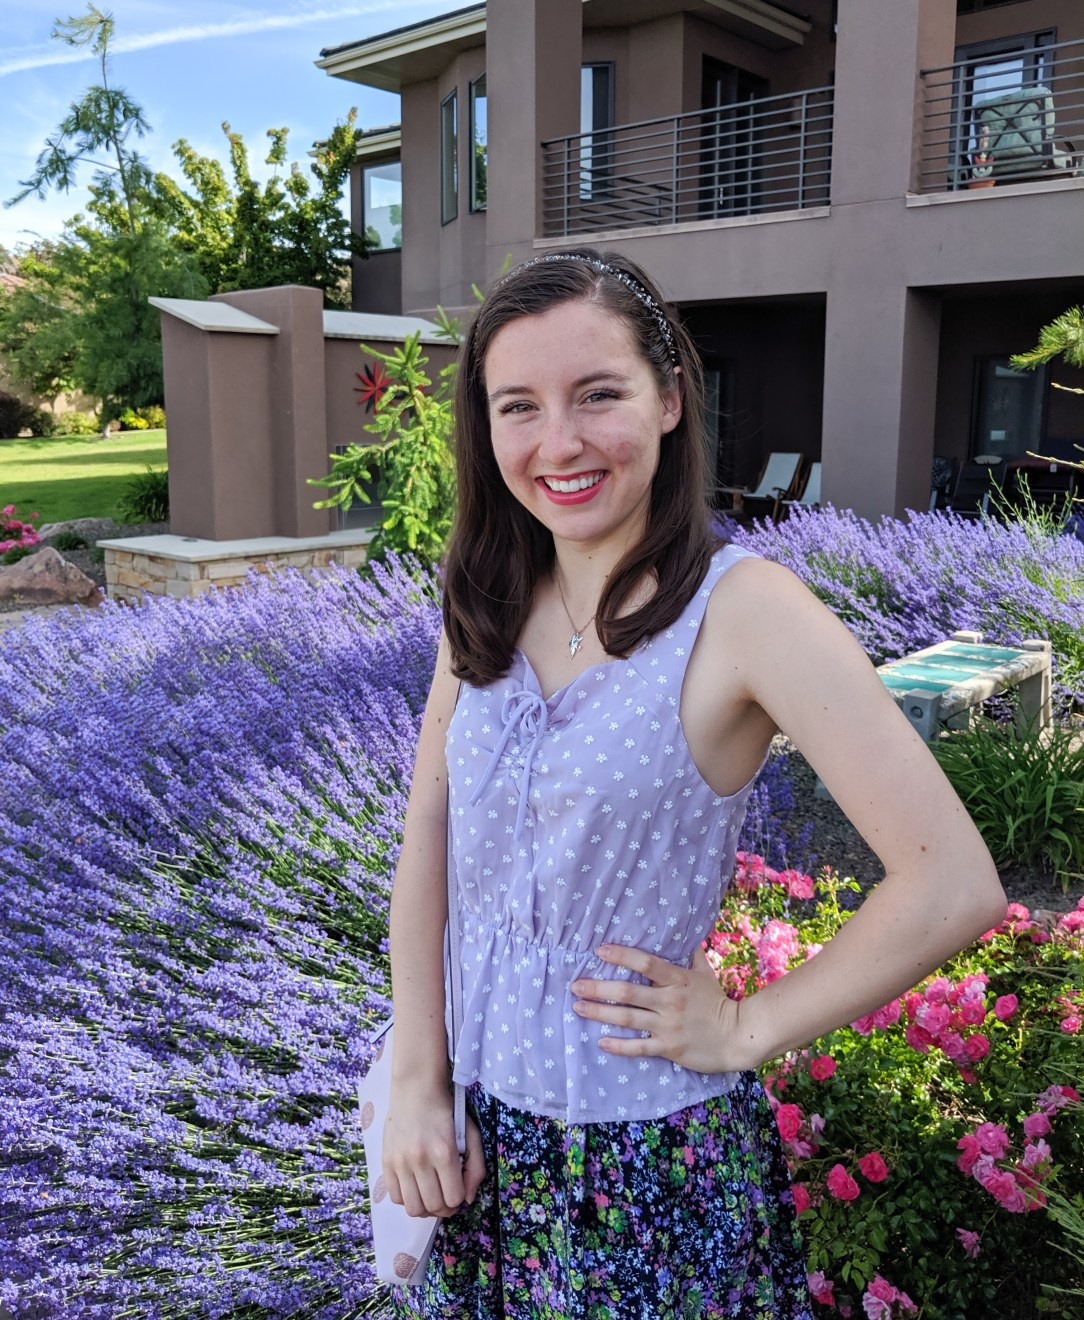 Summer outfit, spring outfit, pink lipstick, purple top